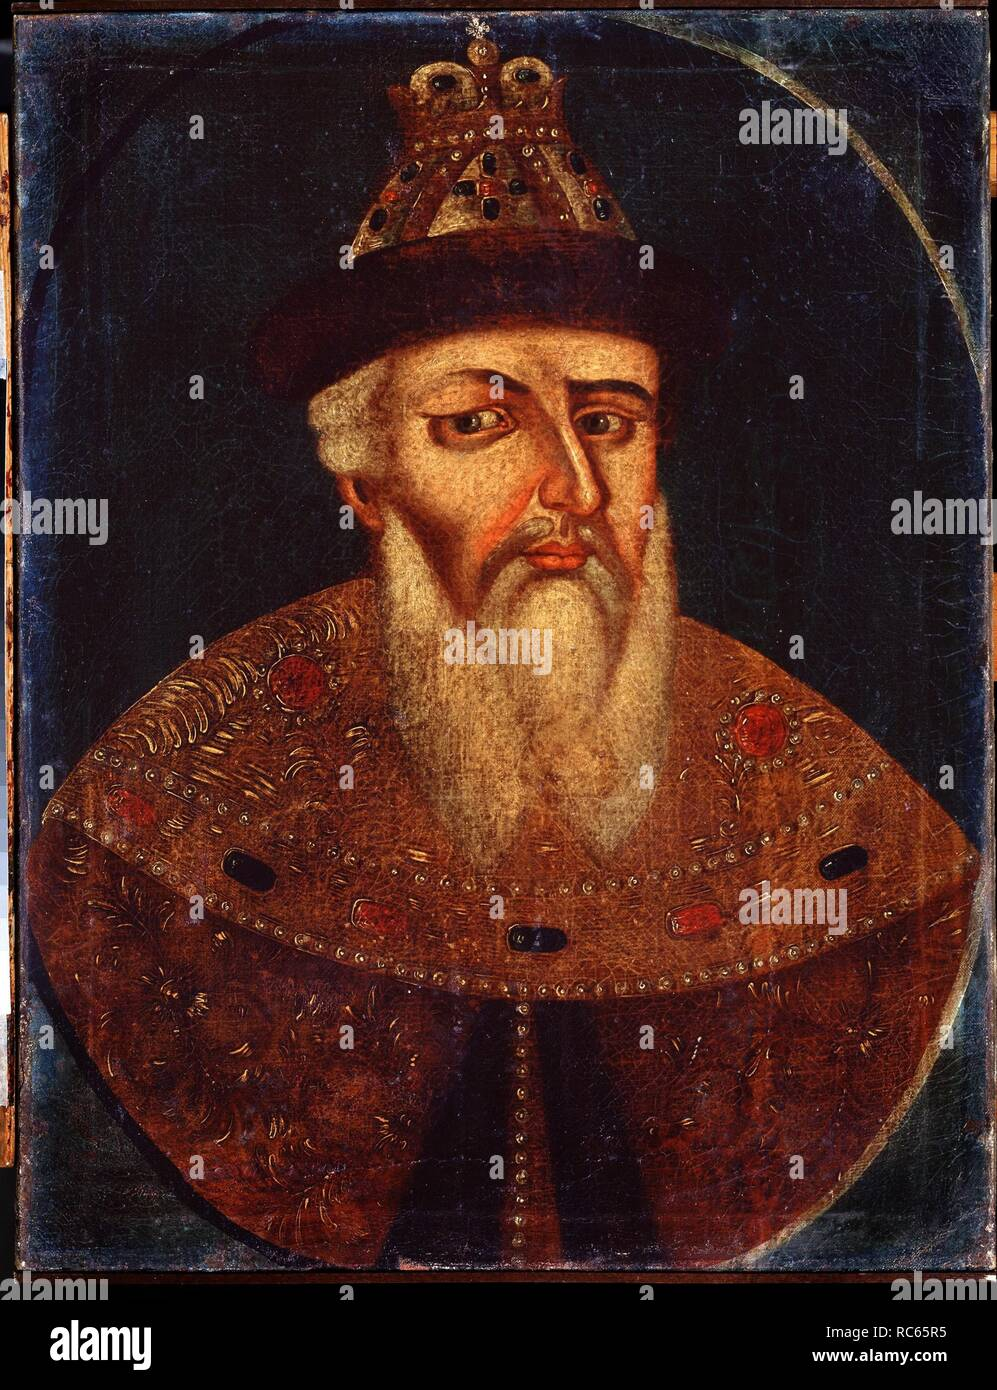 Portrait of the Tsar Ivan IV the Terrible (1530-1584). Museum: State Art Museum, Nizhny Tagil. Author: ANONYMOUS. - Stock Image